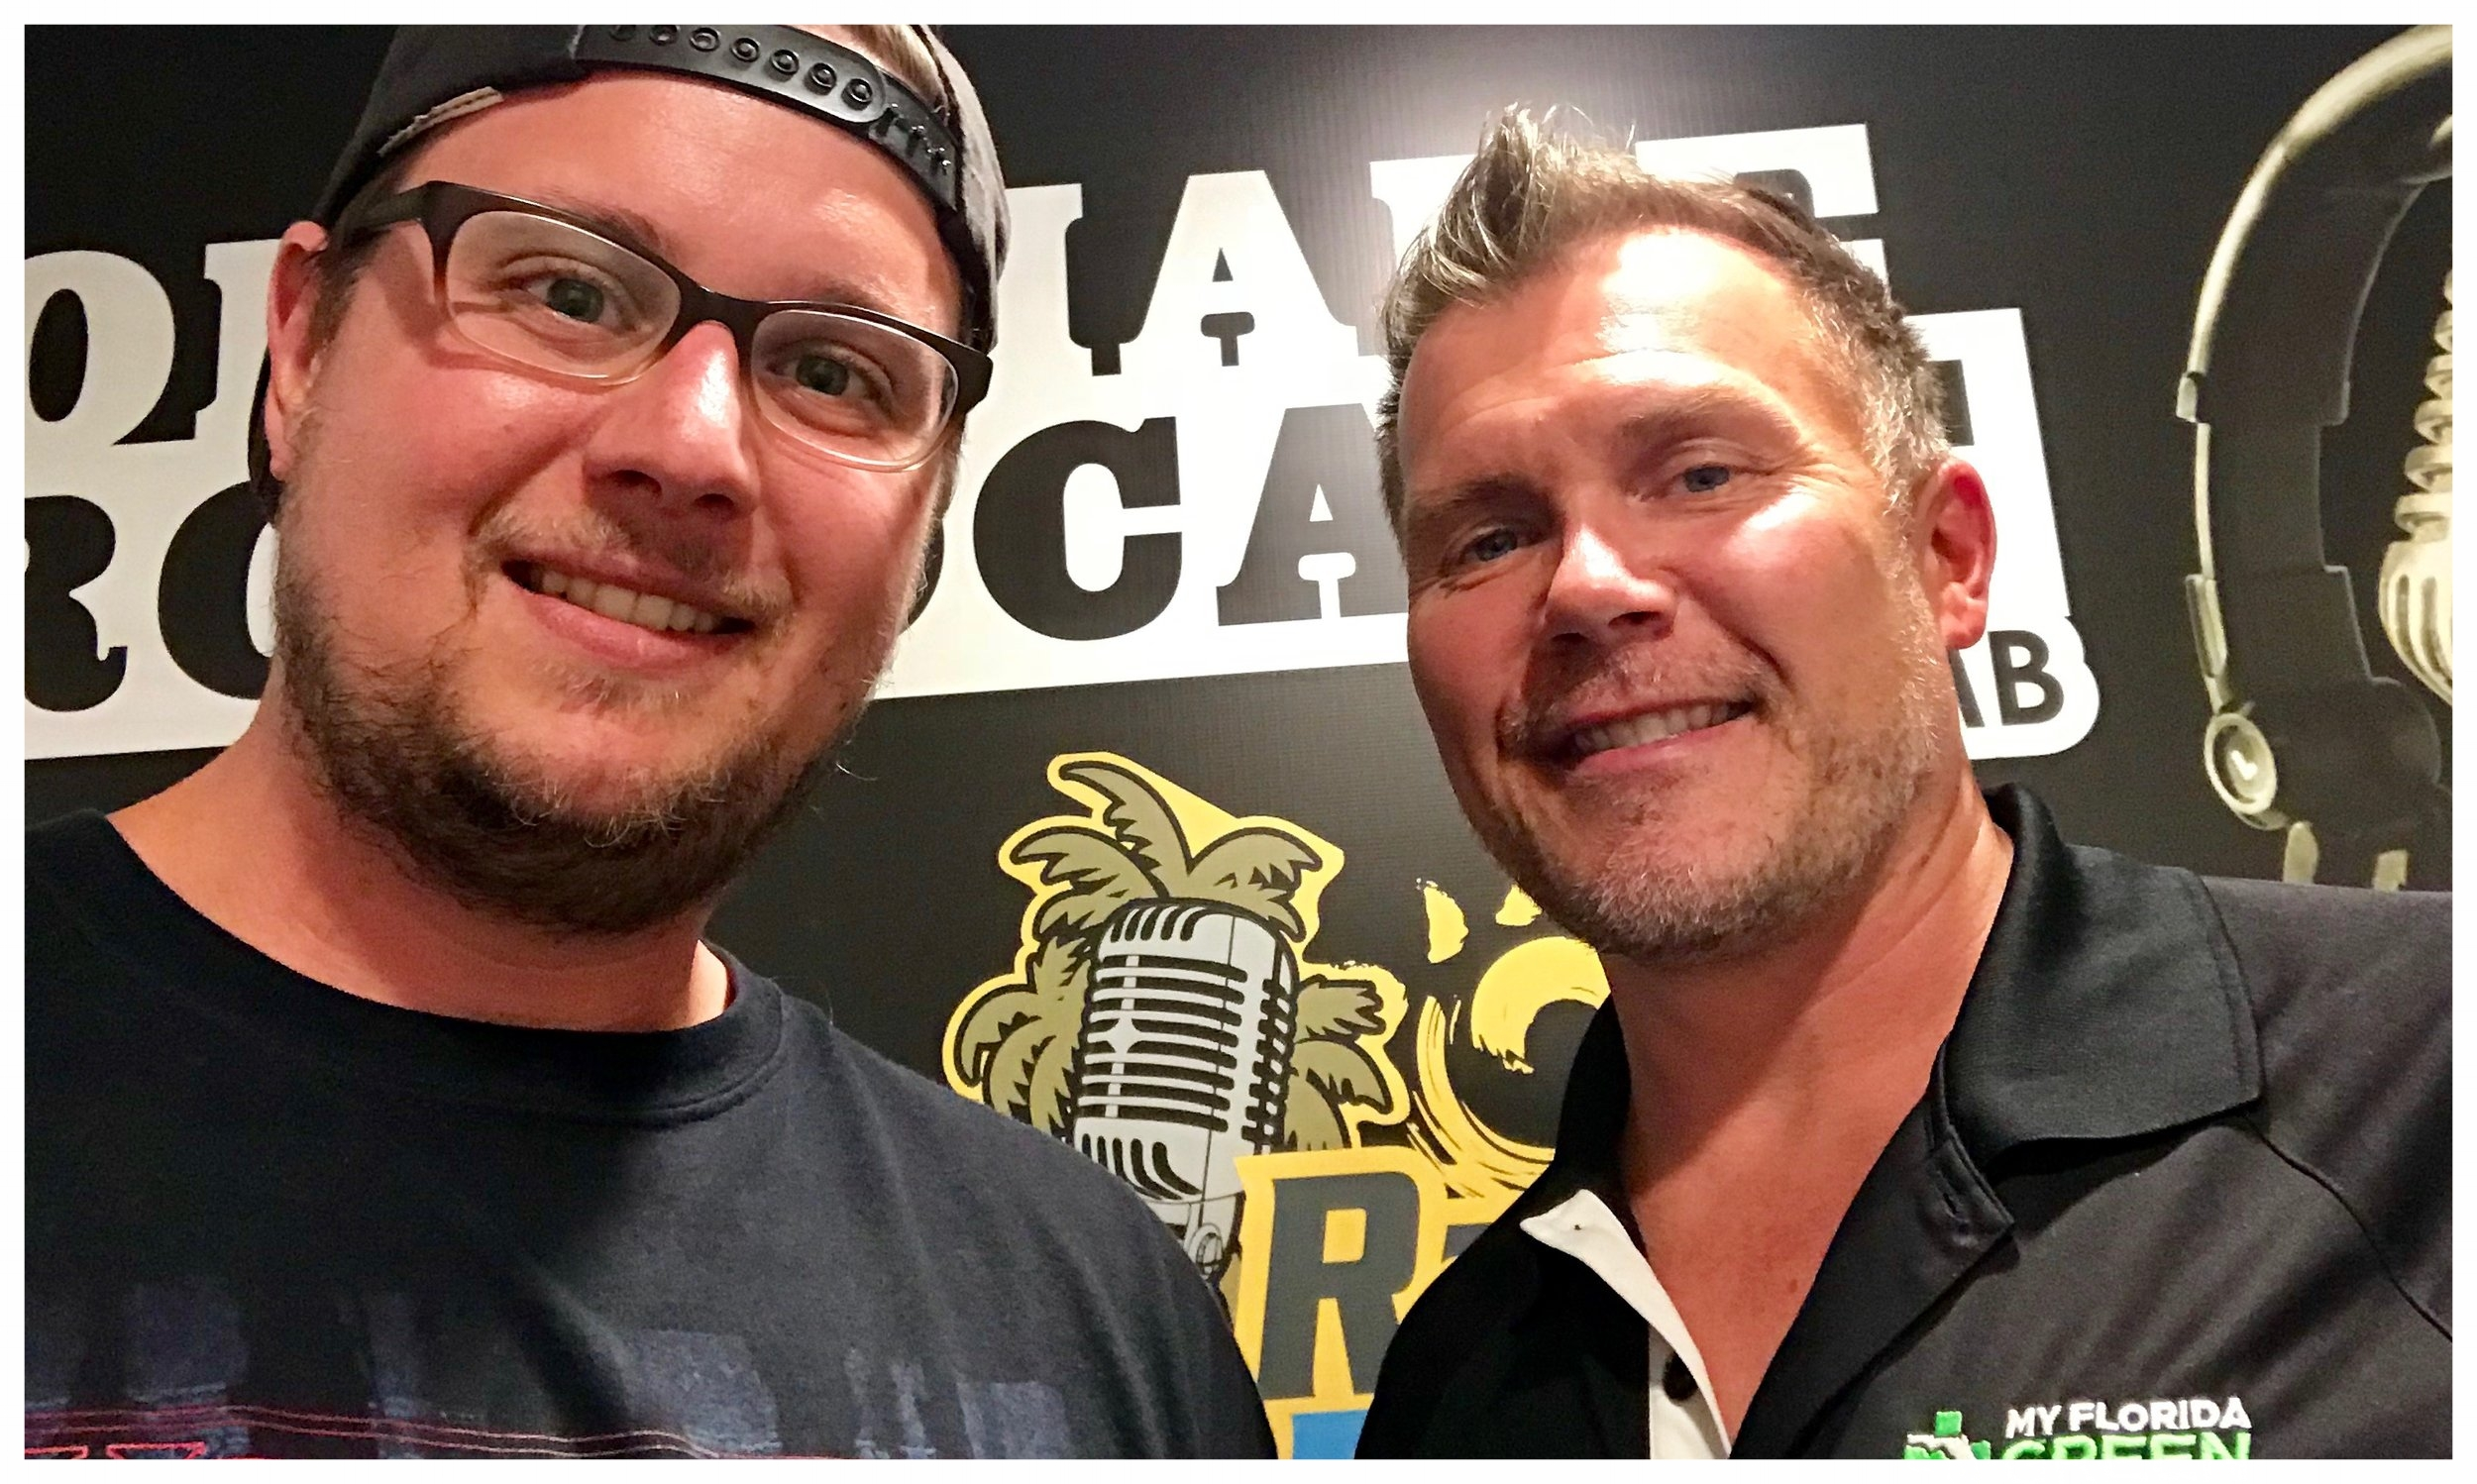 Nick Garulay from MyFloridaGreen.com & Your Boy Bill after recording The Homemade Broadcast on 03/29/2018.